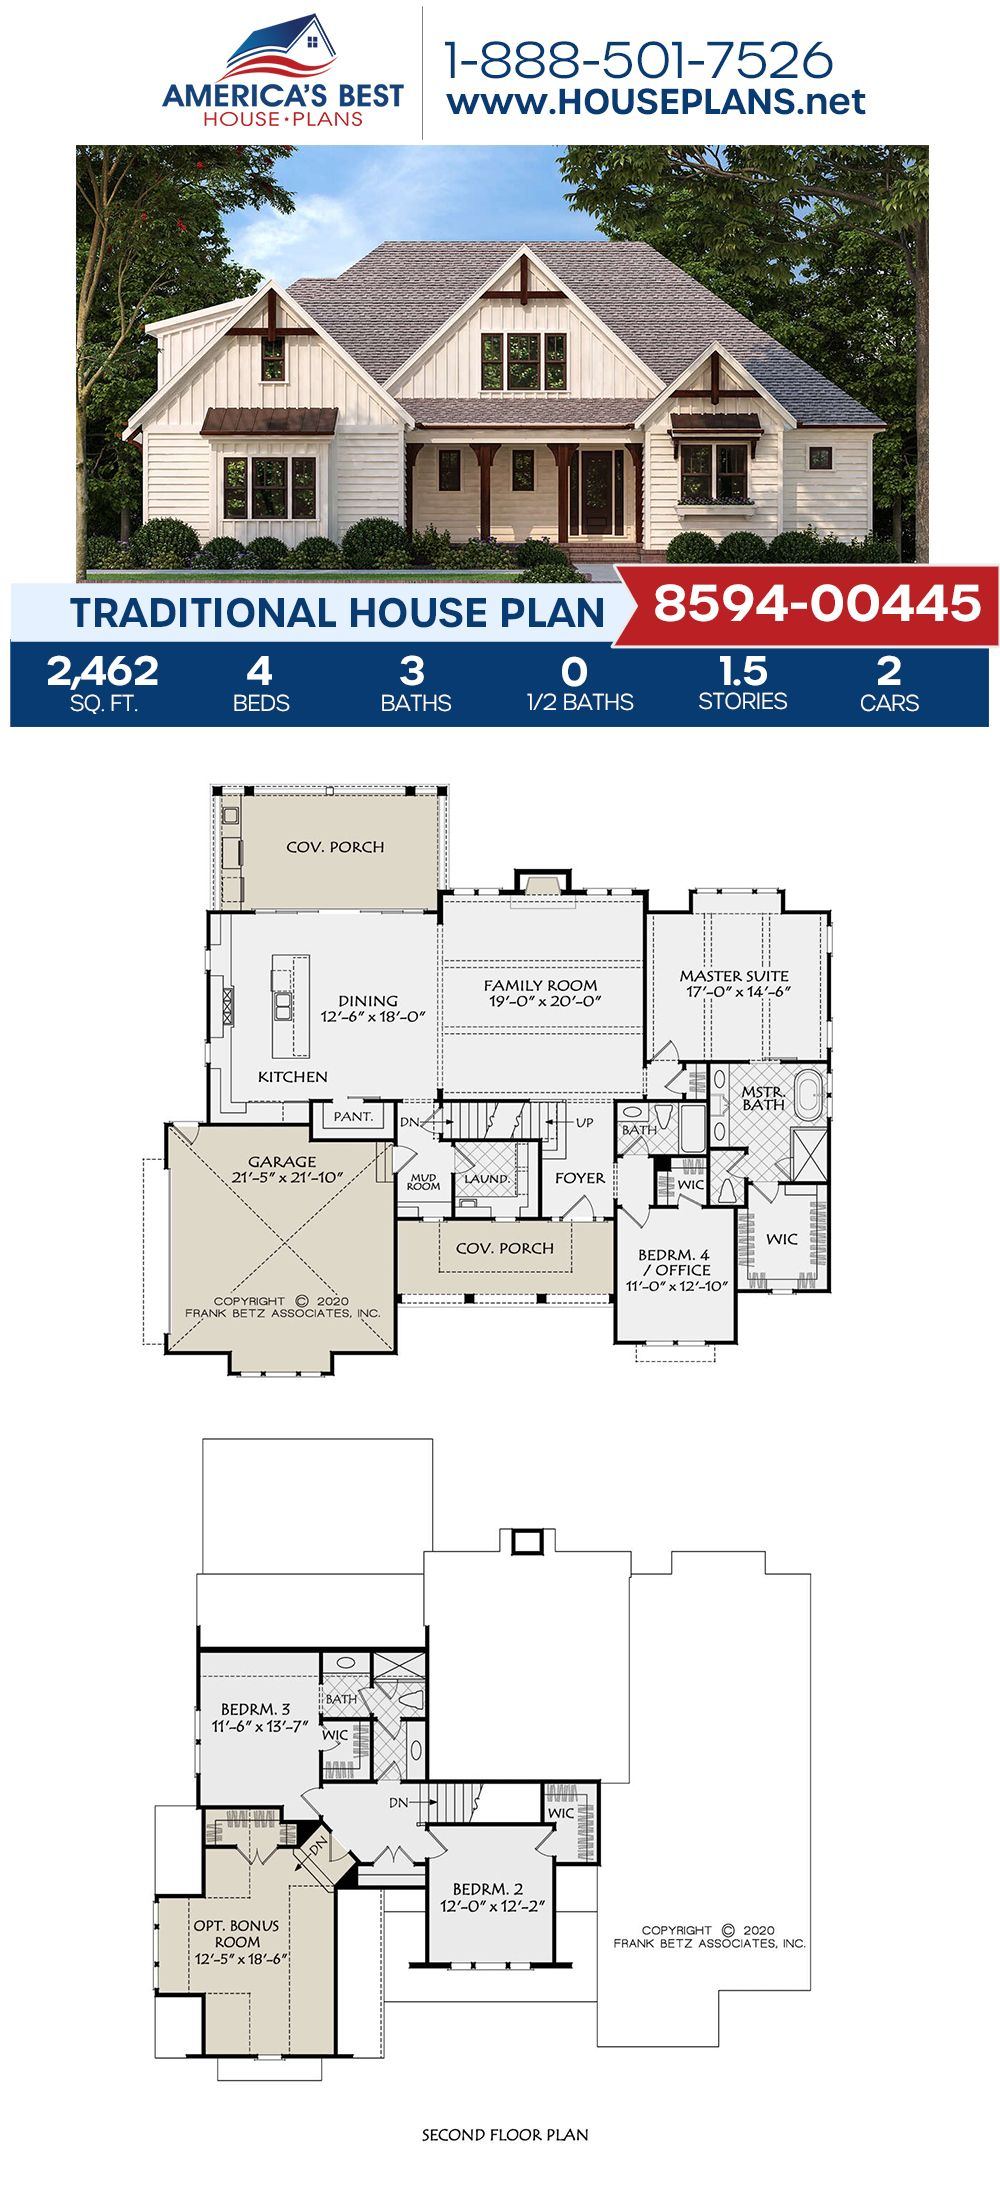 House Plan 8594 00445 Traditional Plan 2 462 Square Feet 4 Bedrooms 3 Bathrooms Pool House Plans Affordable House Plans New House Plans